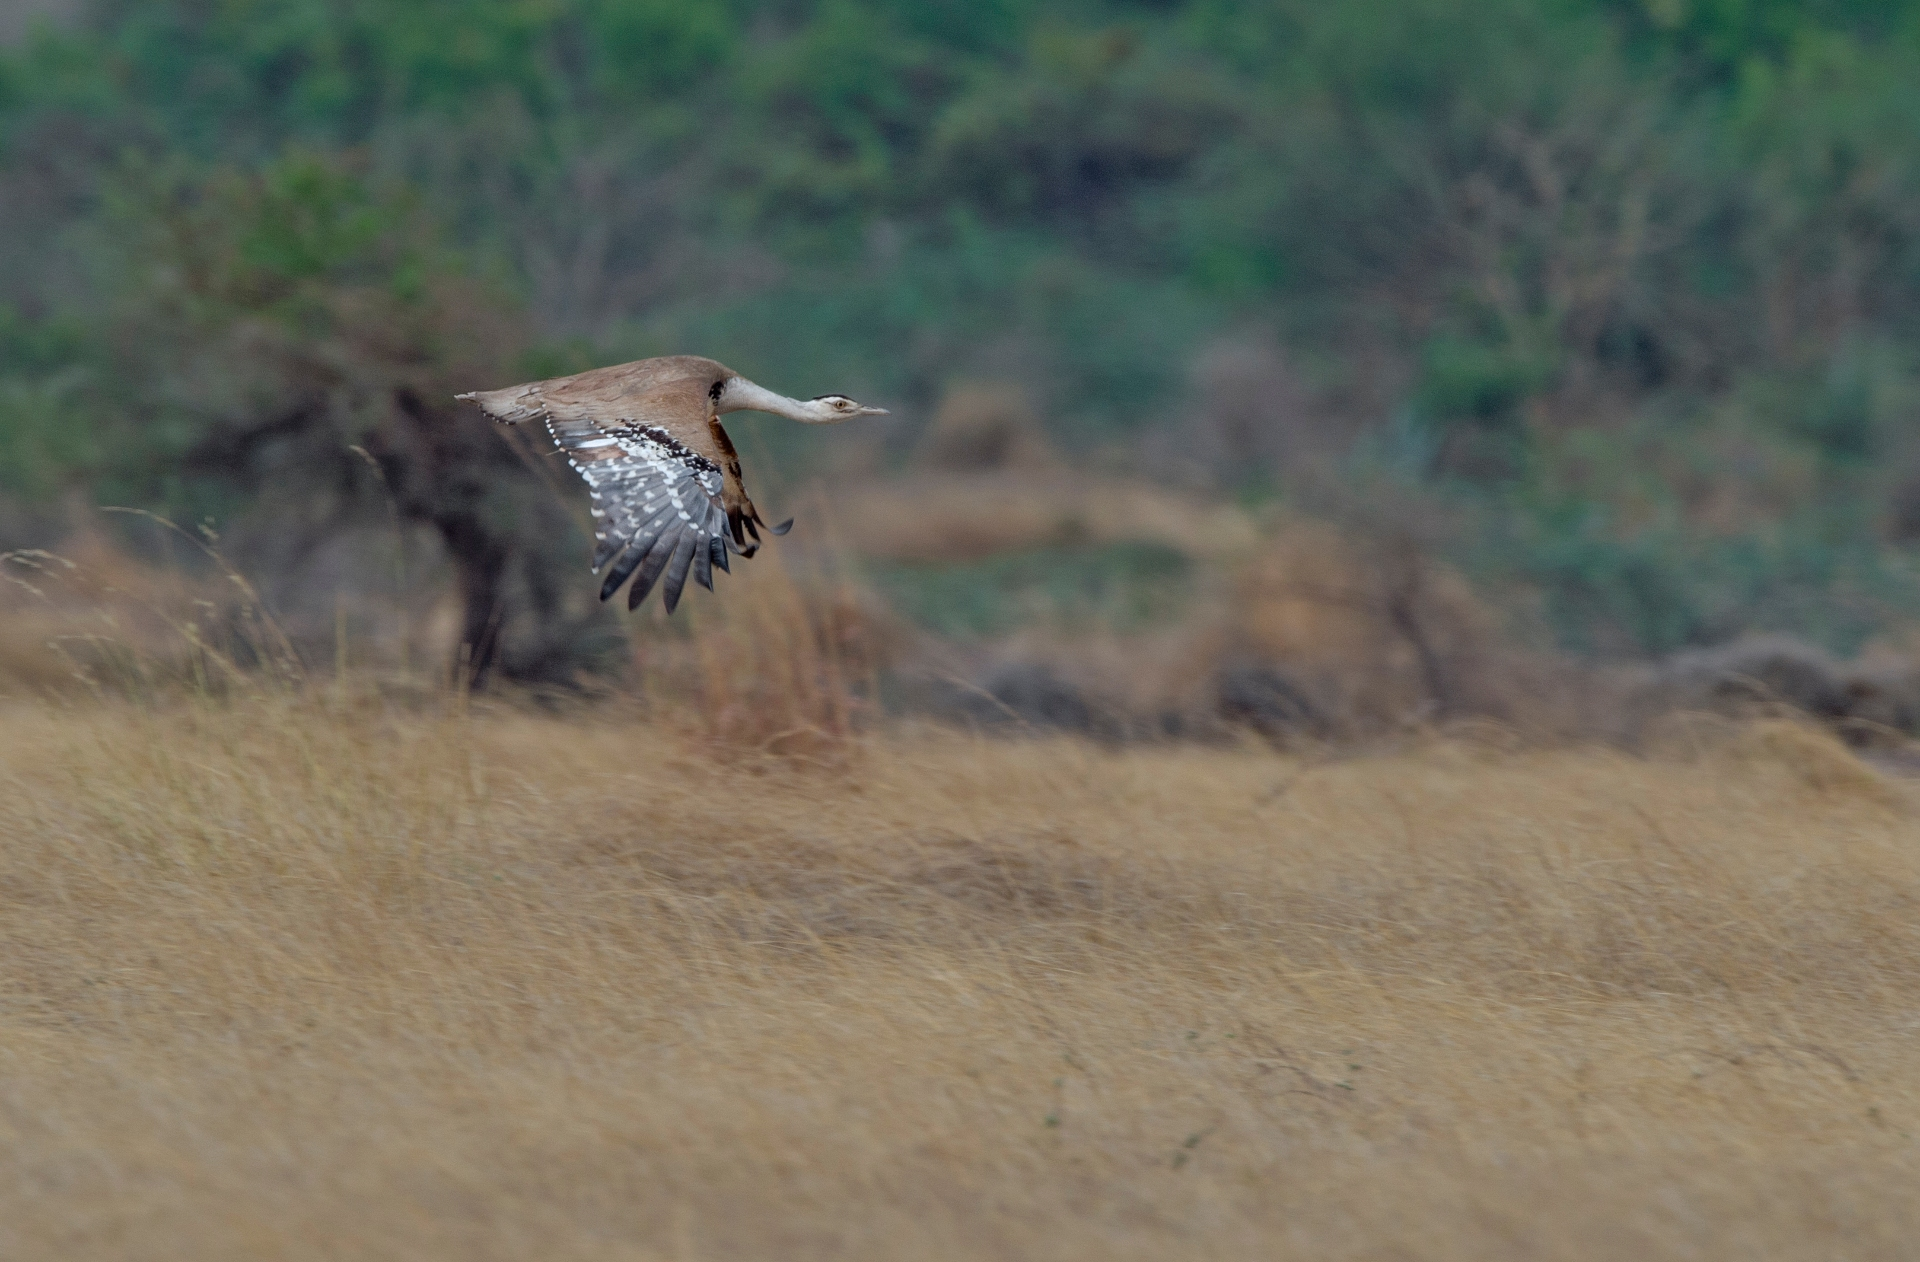 The heavily-built great Indian bustard is not an expert flier. It keeps low, and spends most of its time foraging in its grassland habitat. Photo: Dhritiman Mukherjee </br> Great Indian bustards are ostrich-like birds once found across Western India. Today, a small, endangered population exists mostly in Rajasthan, Gujarat, and Maharashtra. This bird was spotted in Nannaj, Maharashtra. Cover Photo: Dhritiman Mukherjee